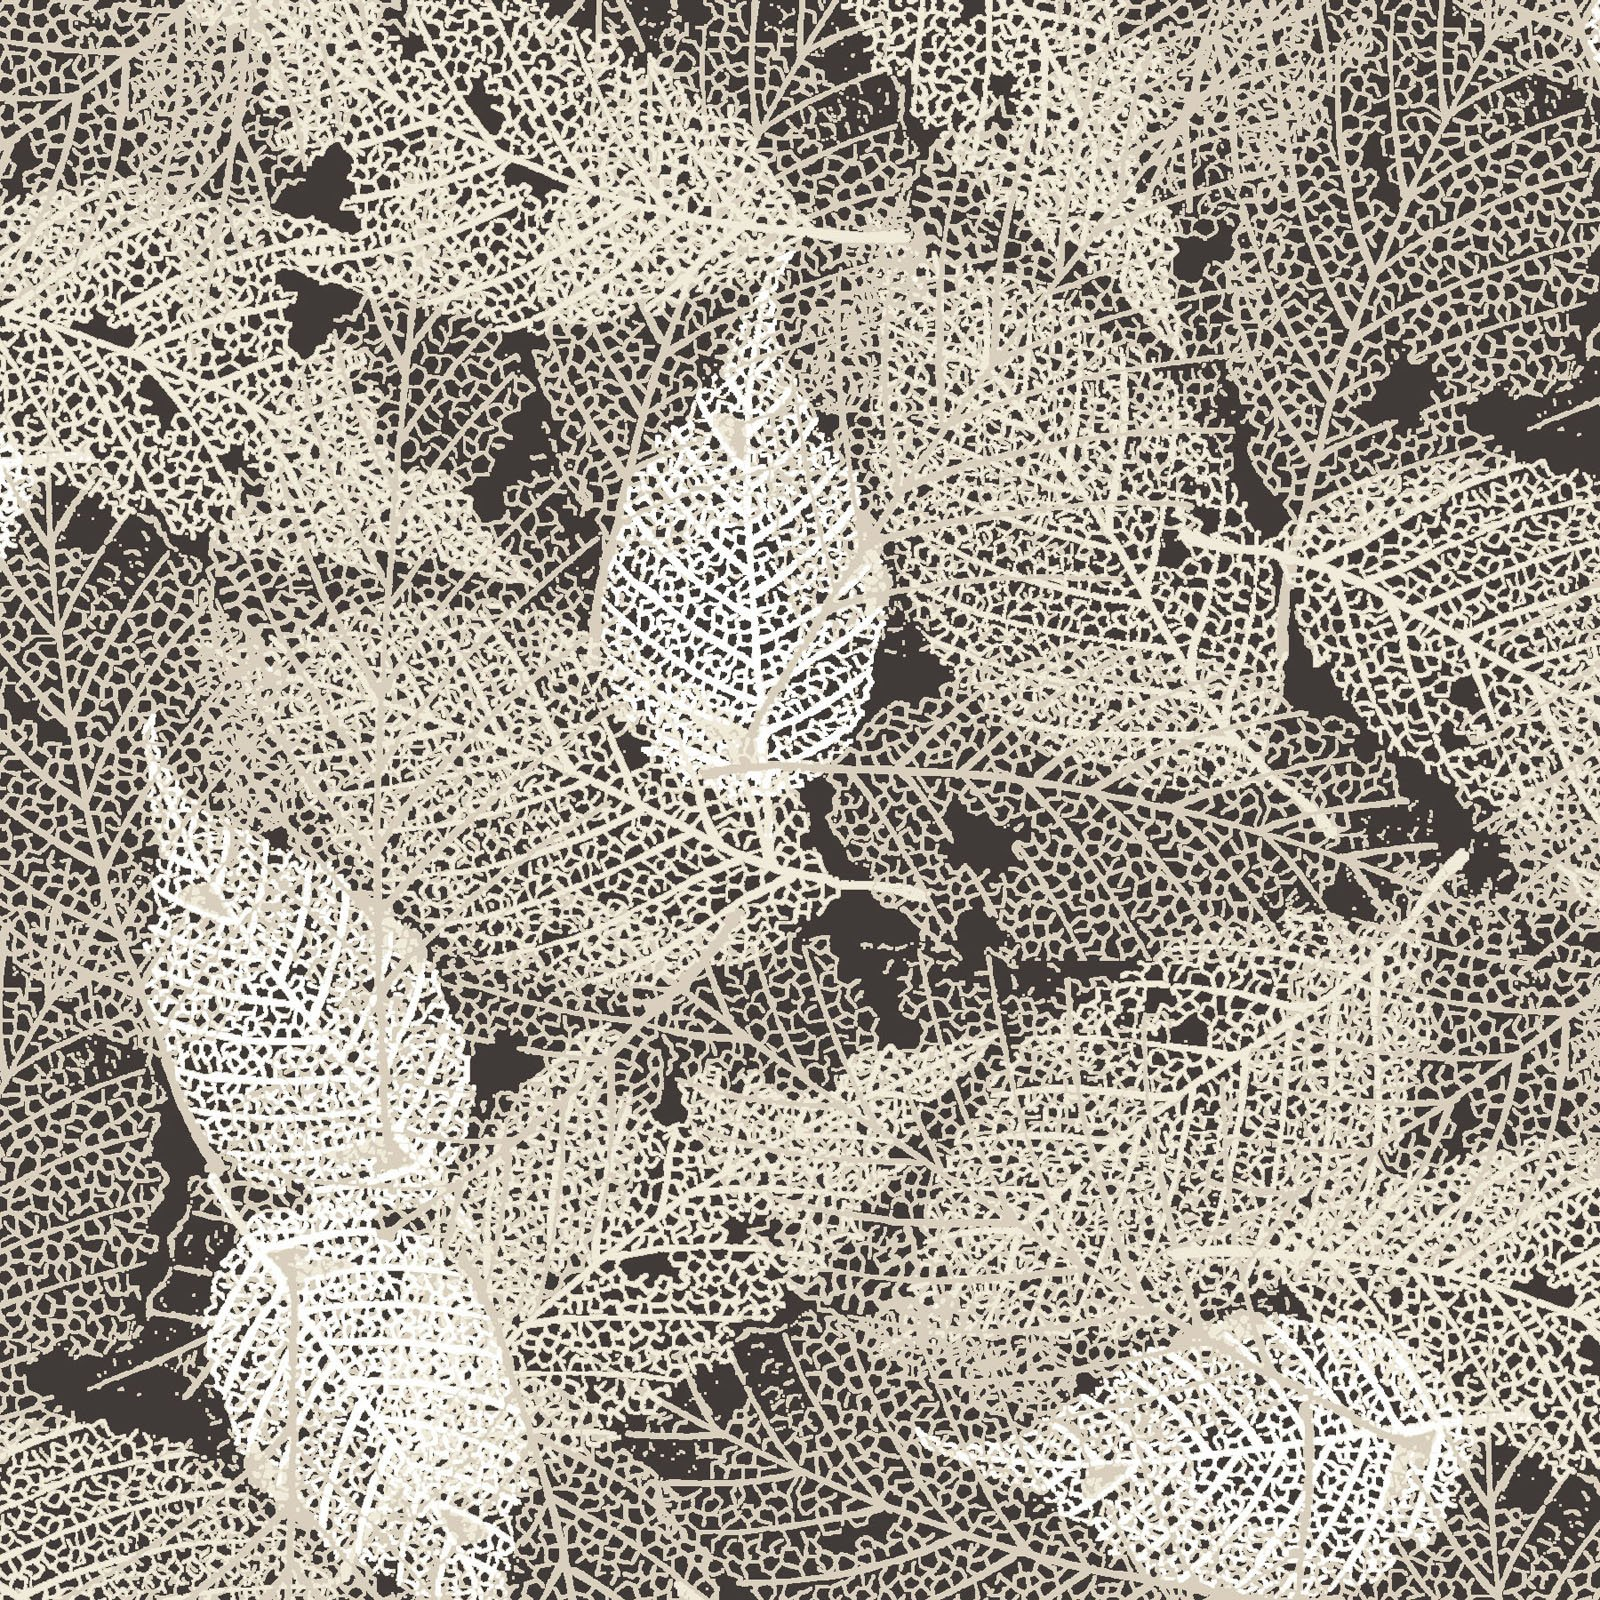 FOLI-4478 LZ - FOLIAGE BY P&B BOUTIQUE TEXTURE LEAVES LT GREY - ARRIVING IN MAY 2021